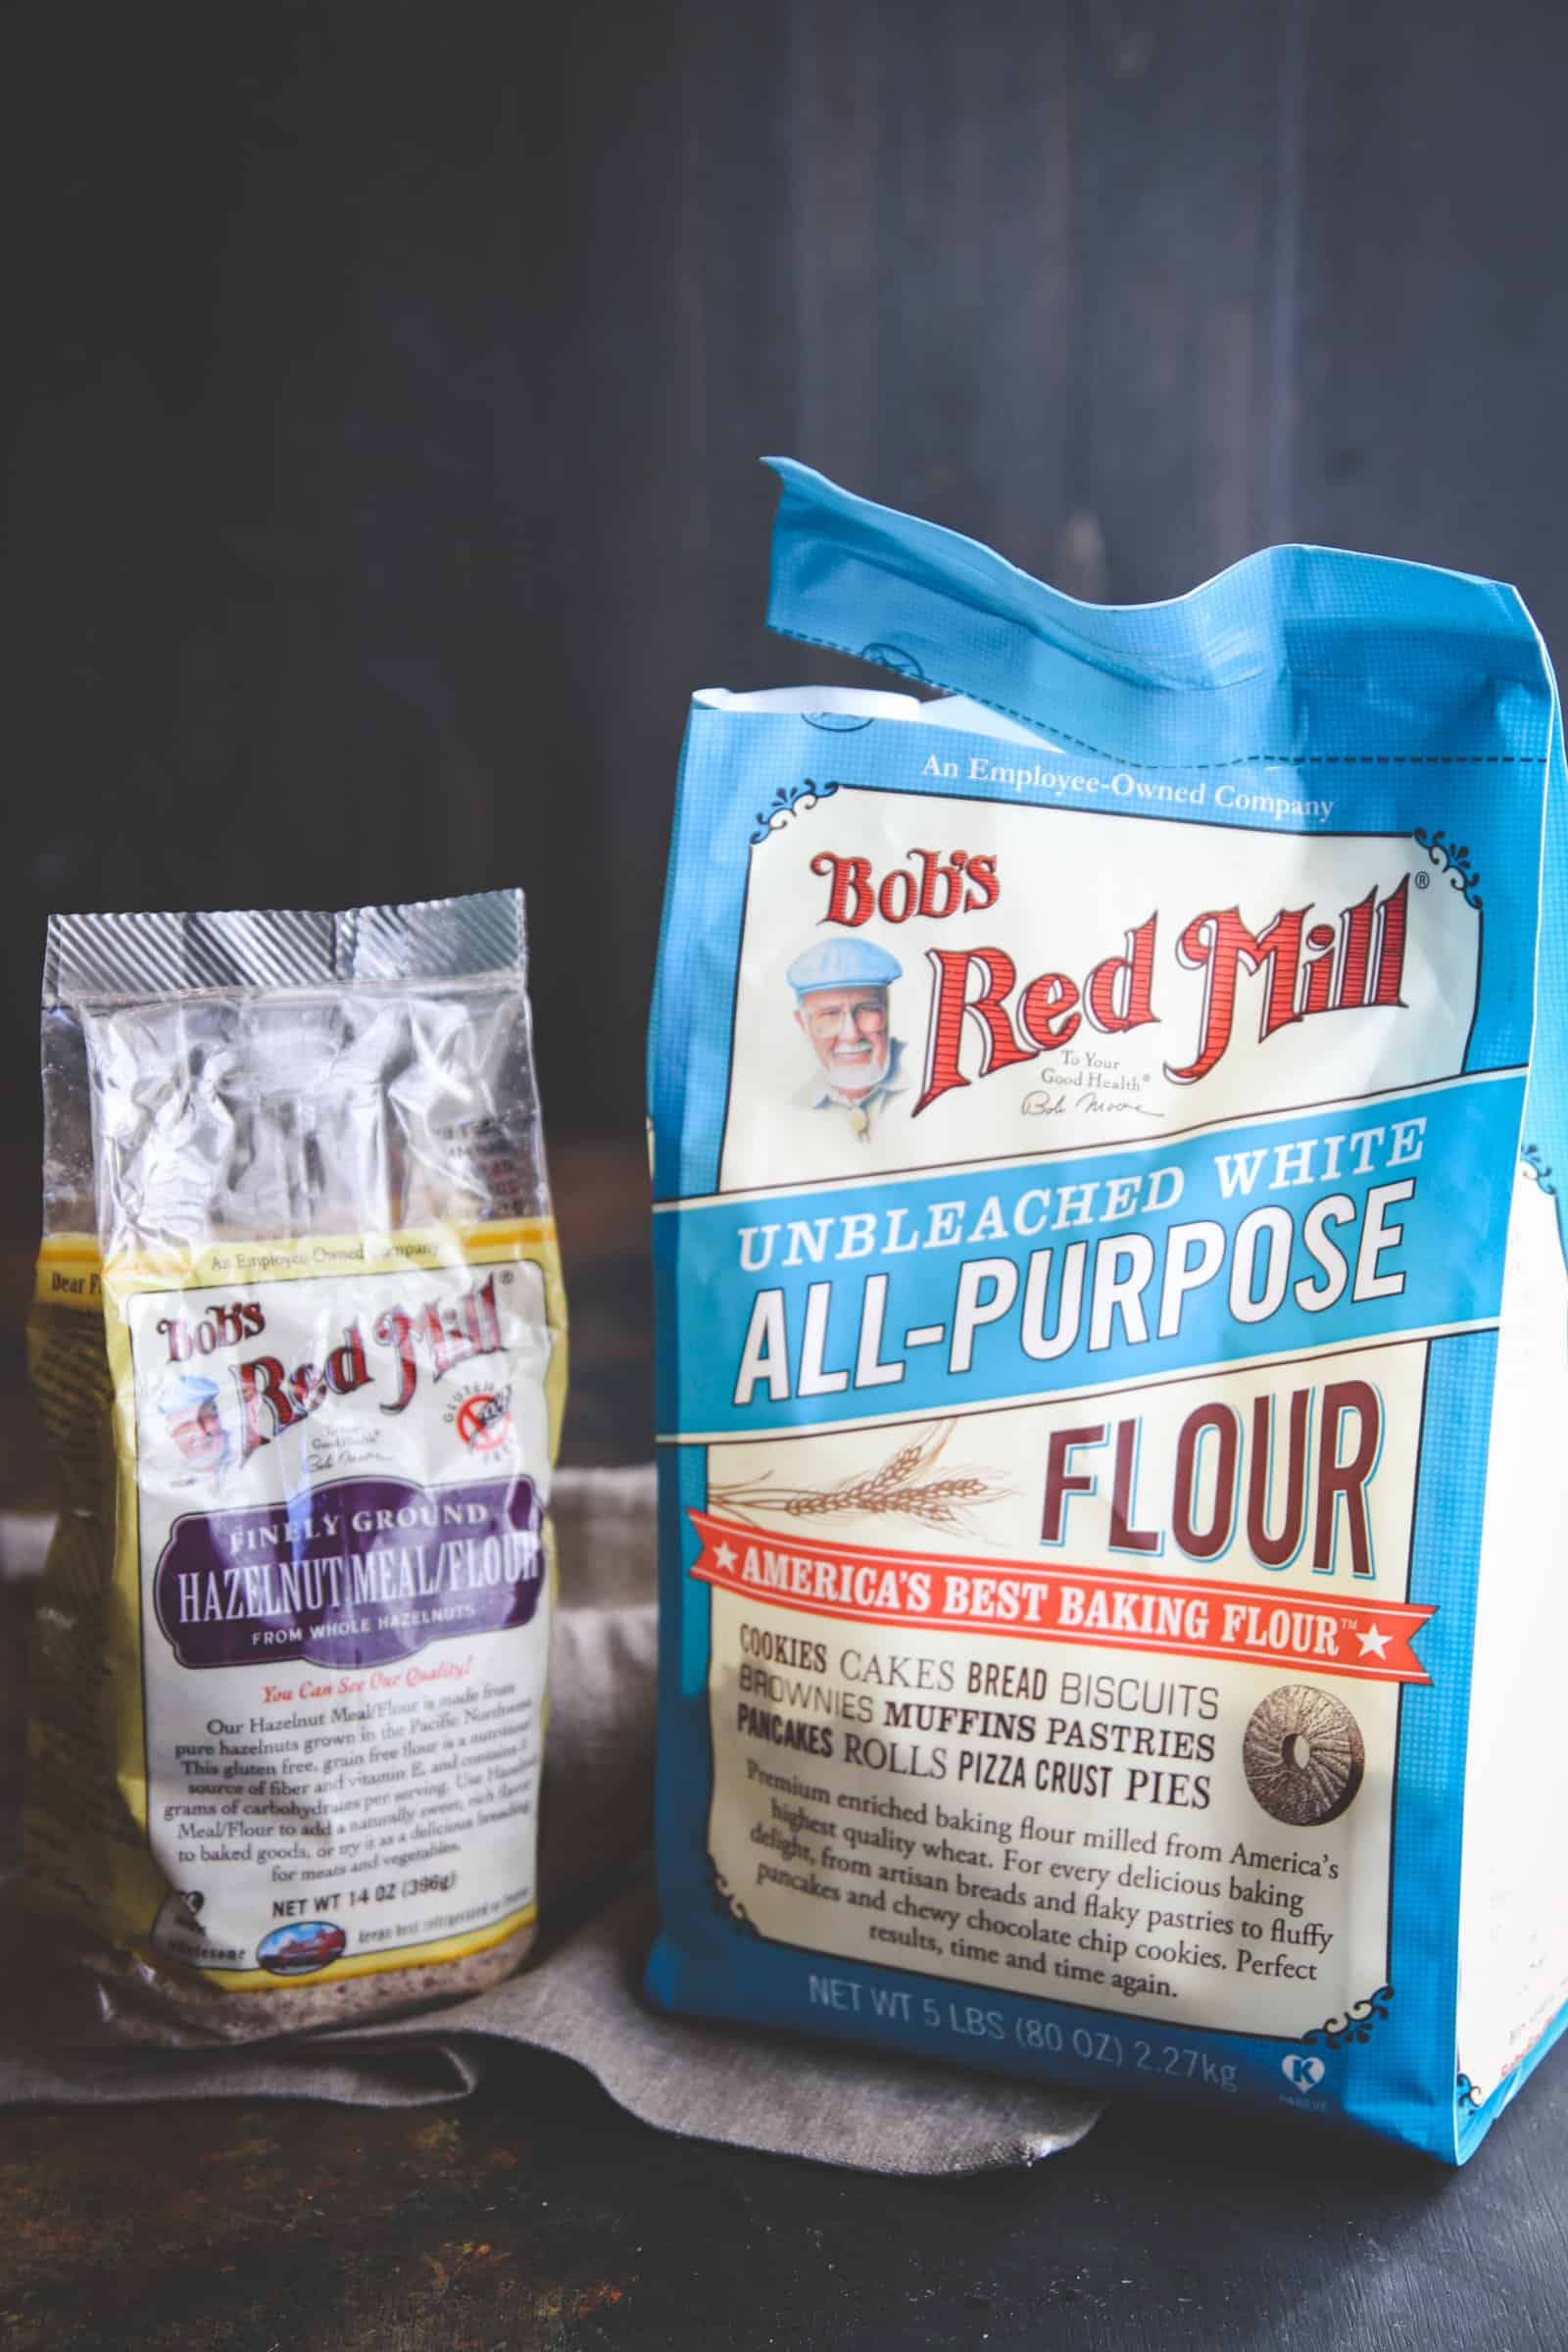 Hazelnut flour from Bobs Red Mill